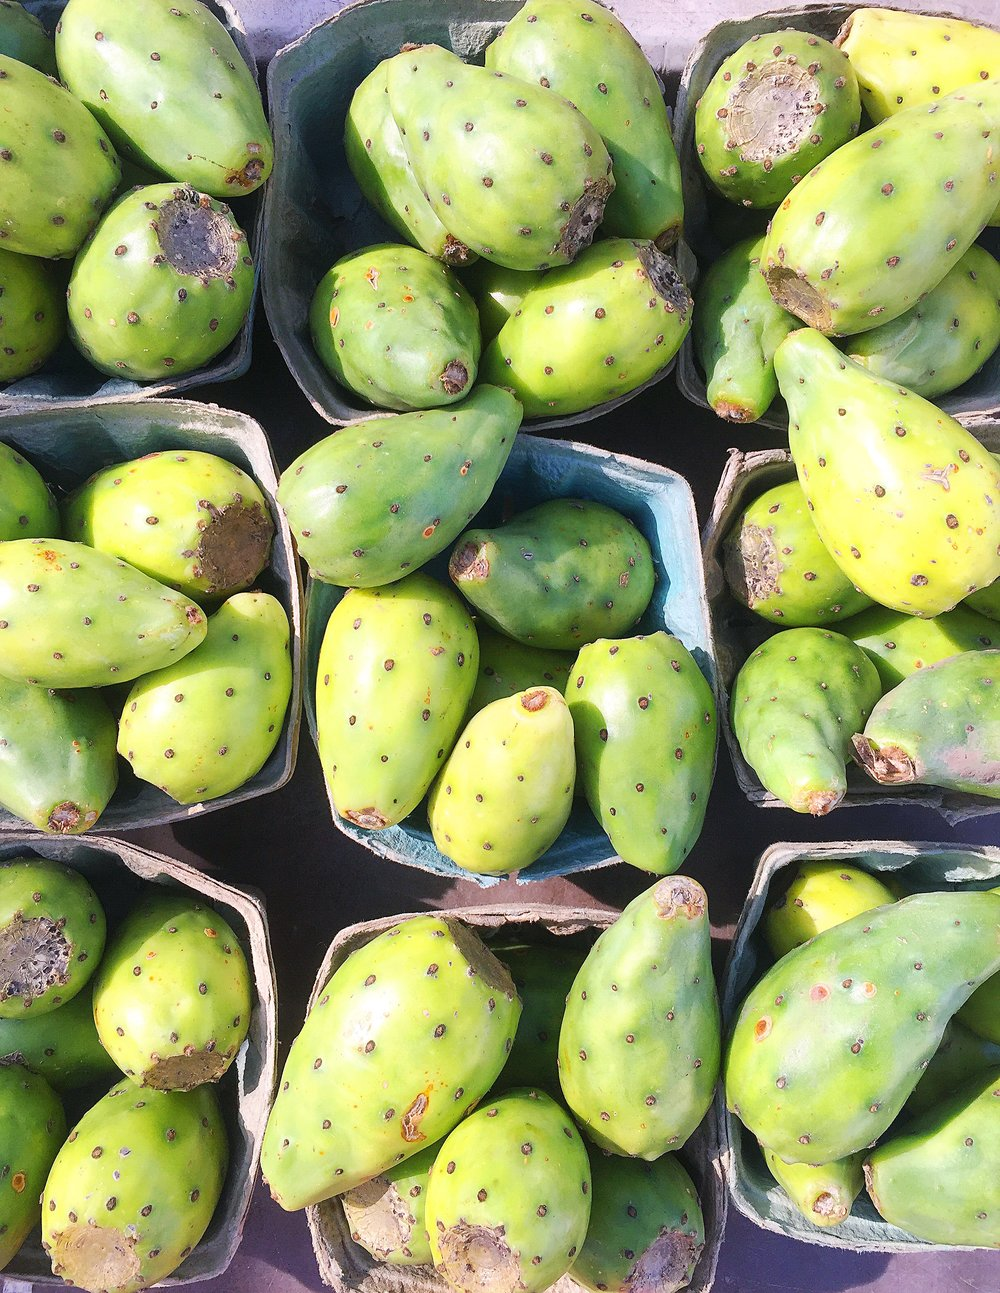 Prickly Pears at the farmers market.